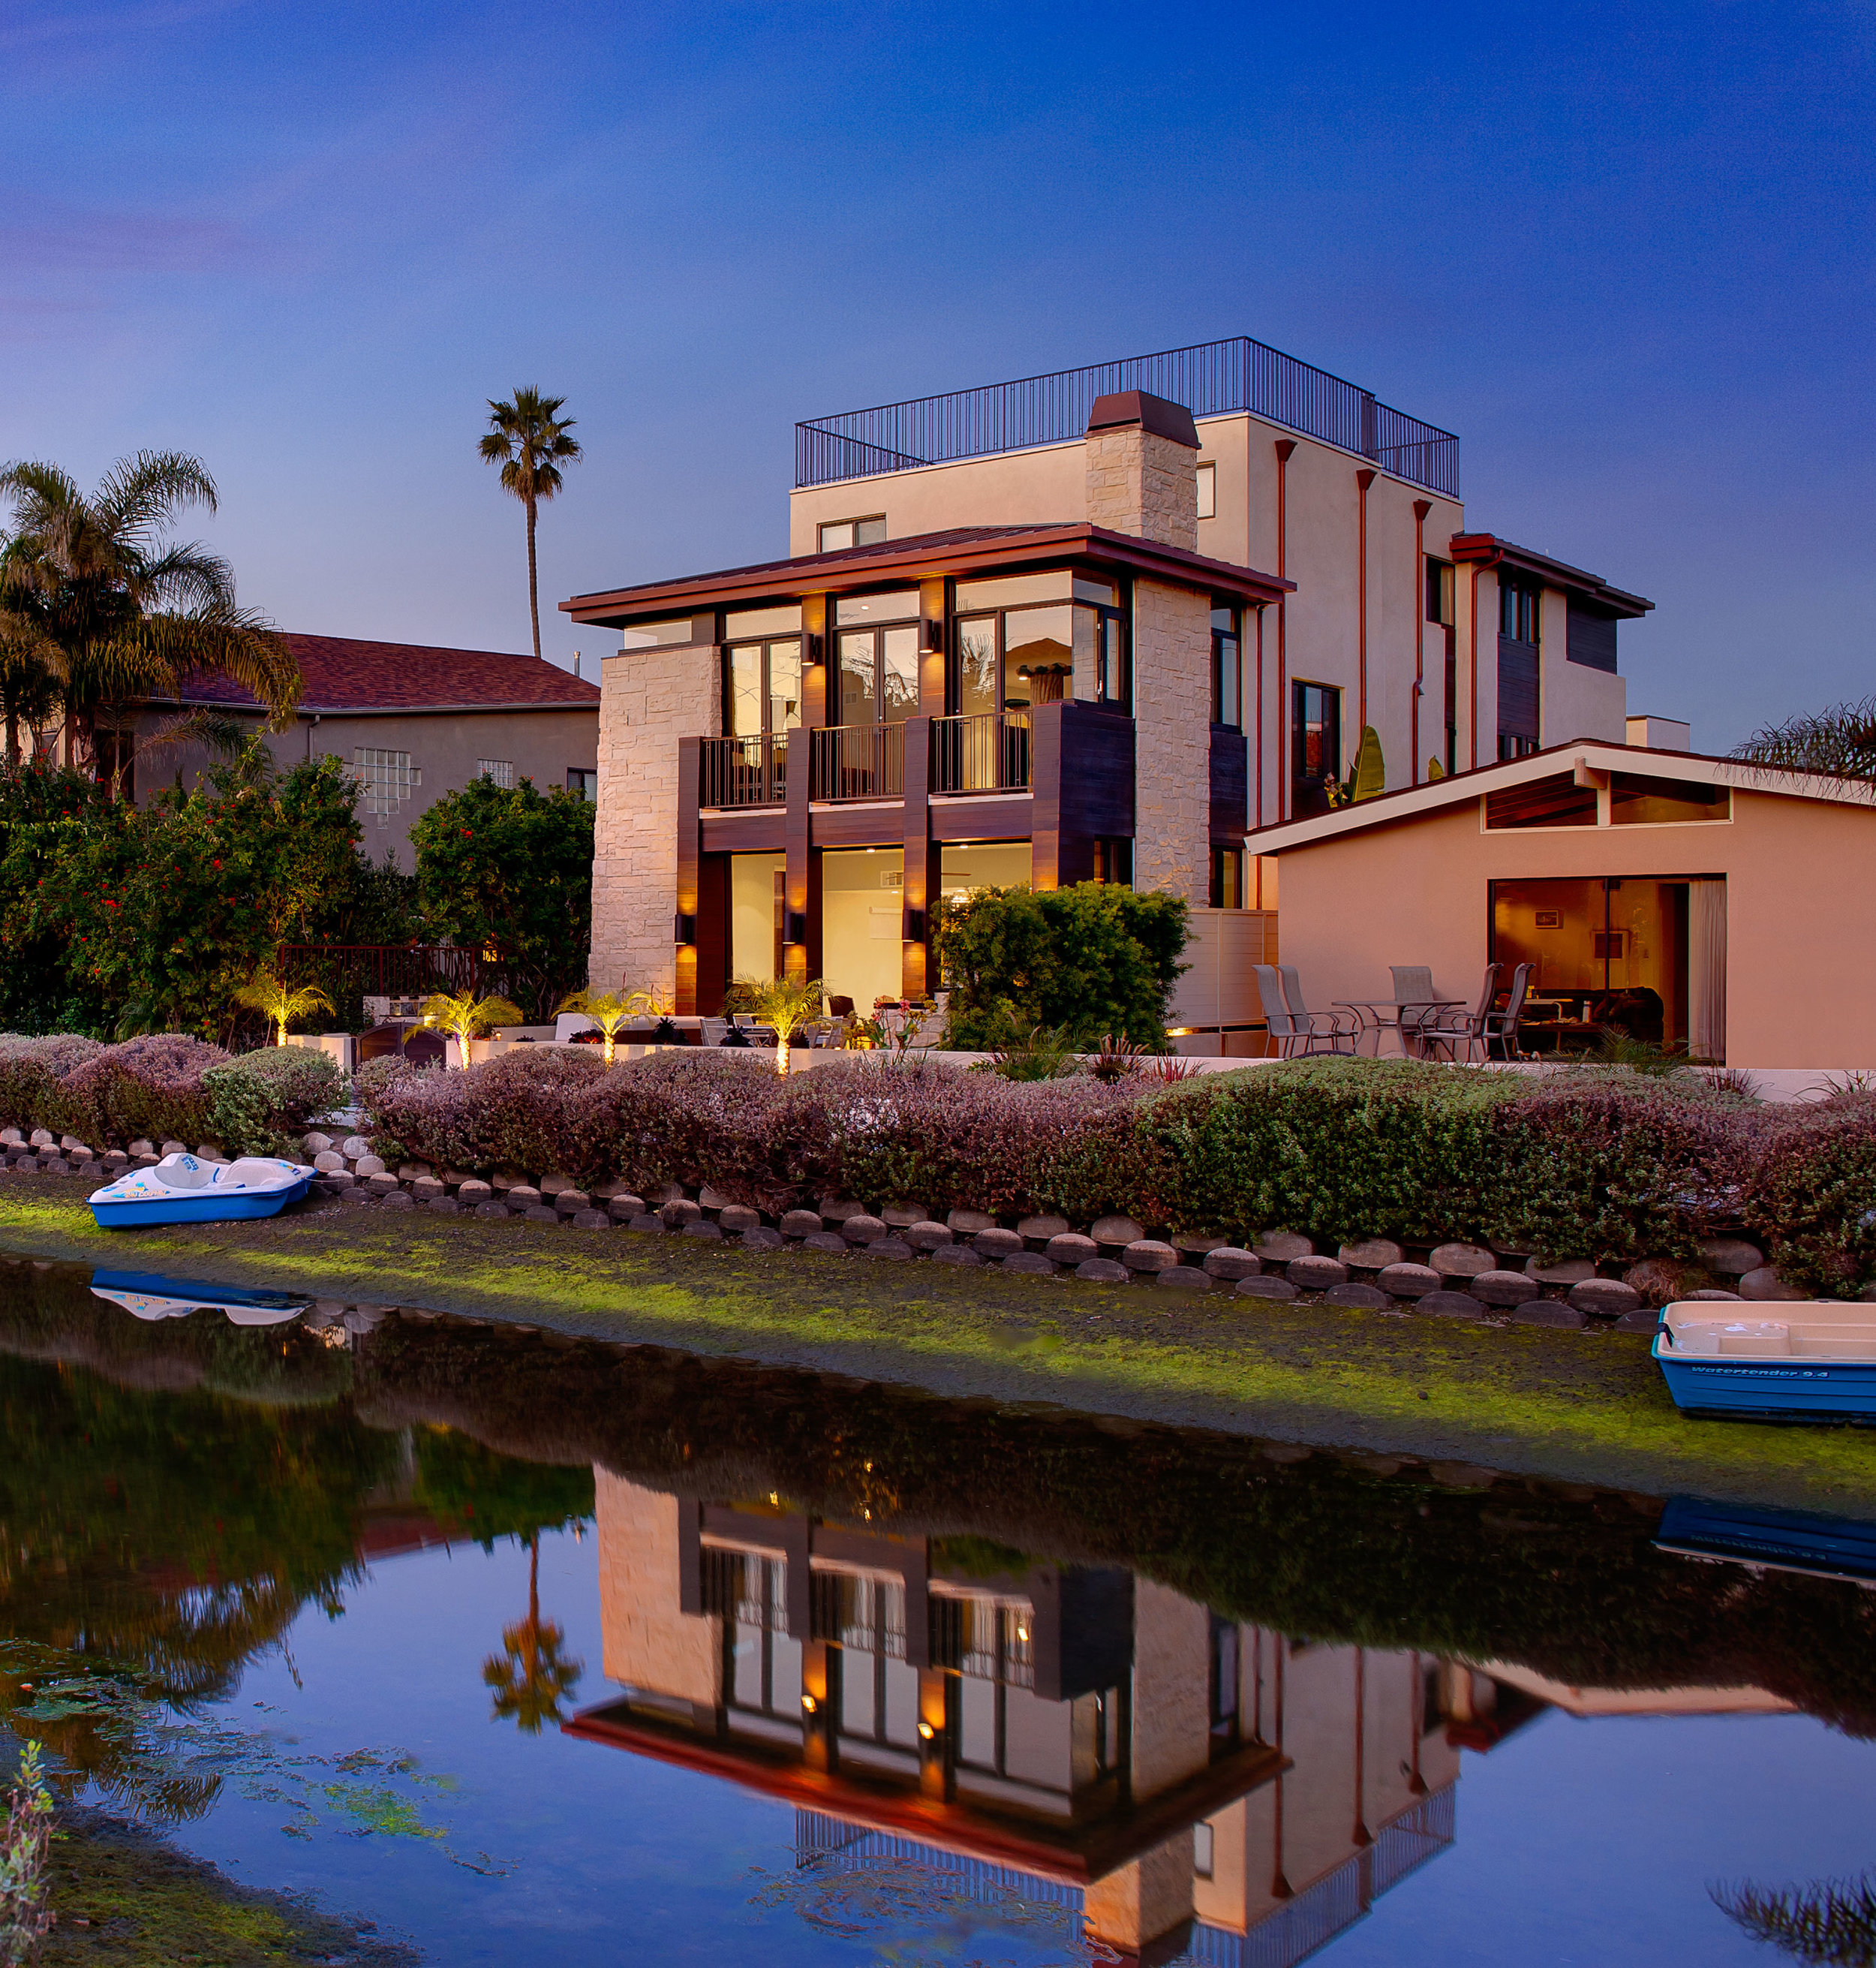 1-Los-Angeles-Modern-architecture-Venice-canals-SiliconBay.jpg